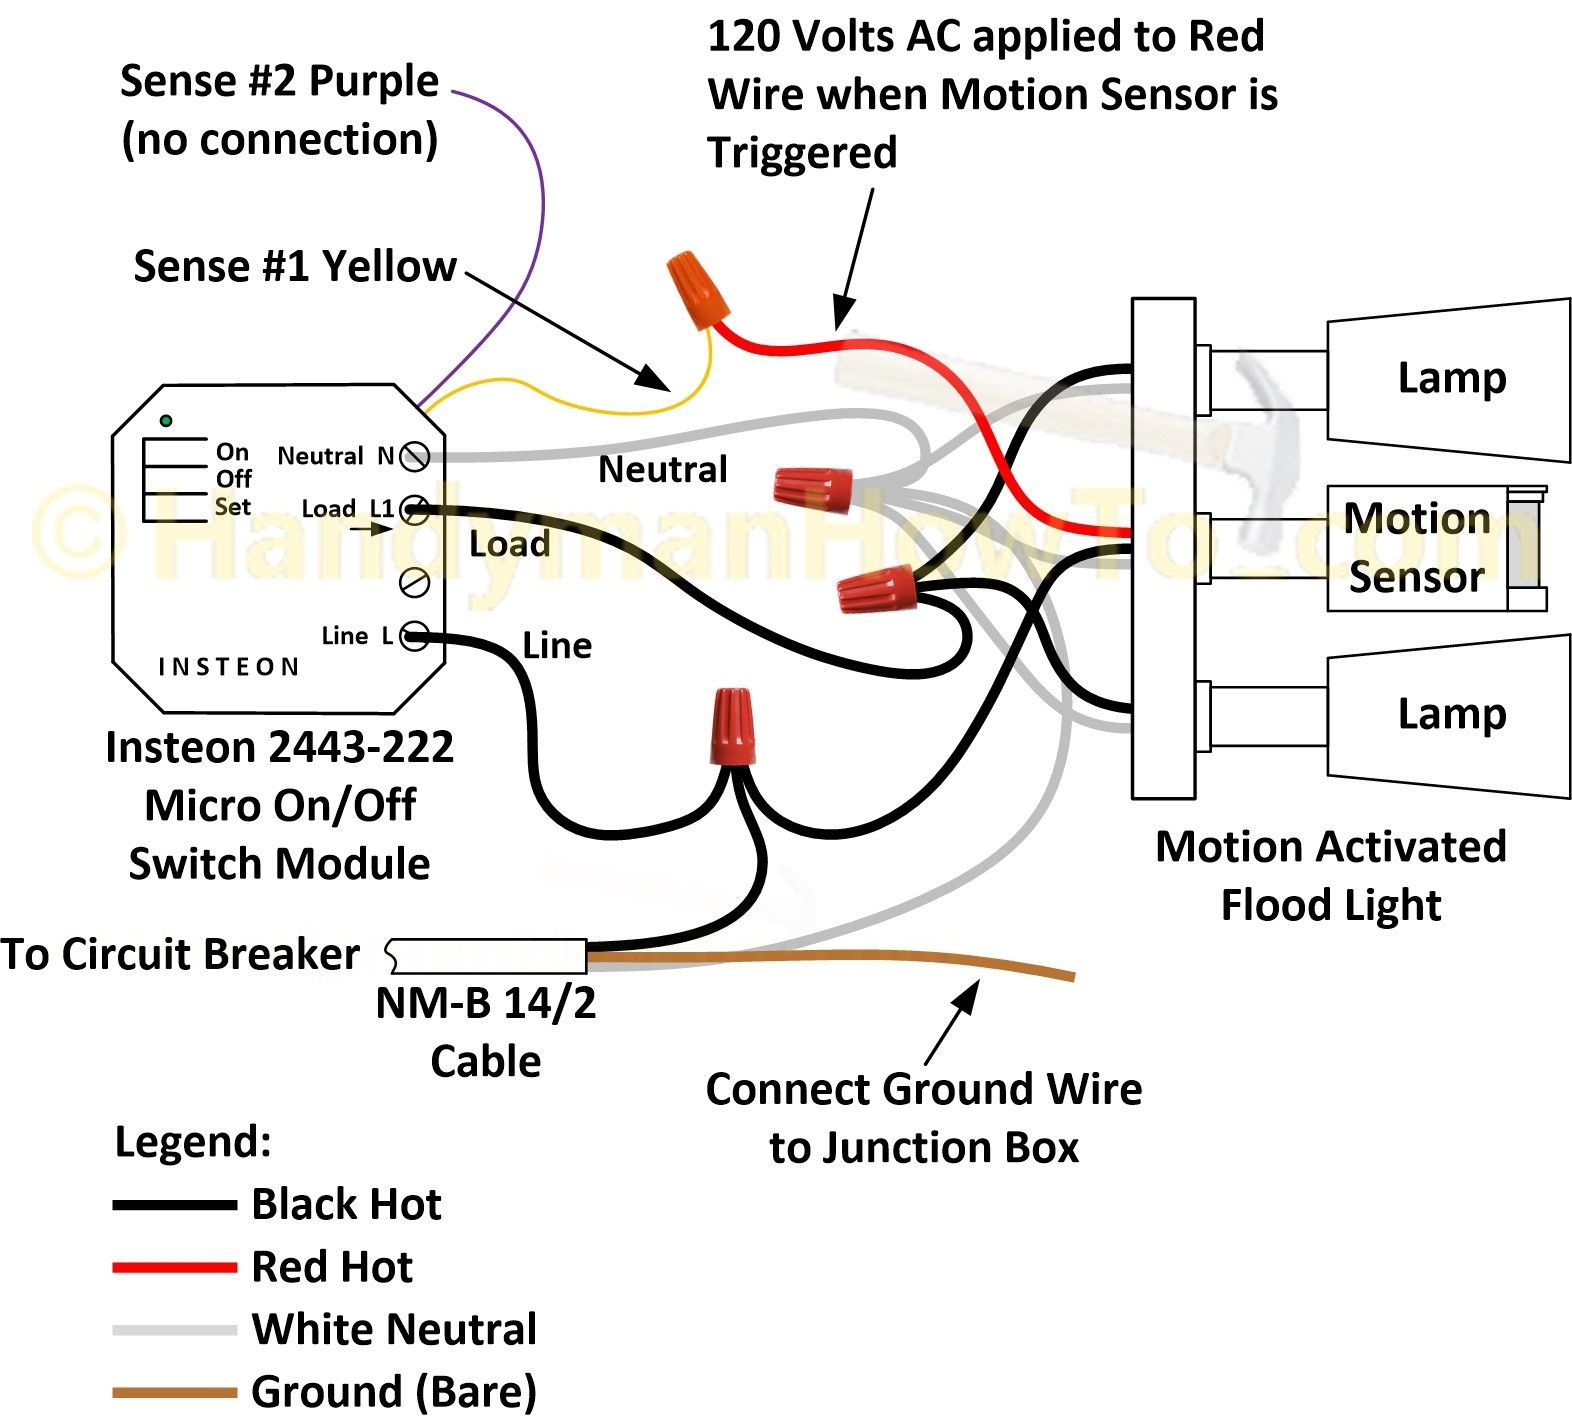 [SCHEMATICS_48IS]  Elegant Wiring Diagram Ceiling Light #diagrams #digramssample  #diagramimages #wiringdia… | Sensor lights outdoor, Outdoor flood lights,  Motion sensor lights outdoor | Wiring Diagram For A Flood Light |  | Pinterest